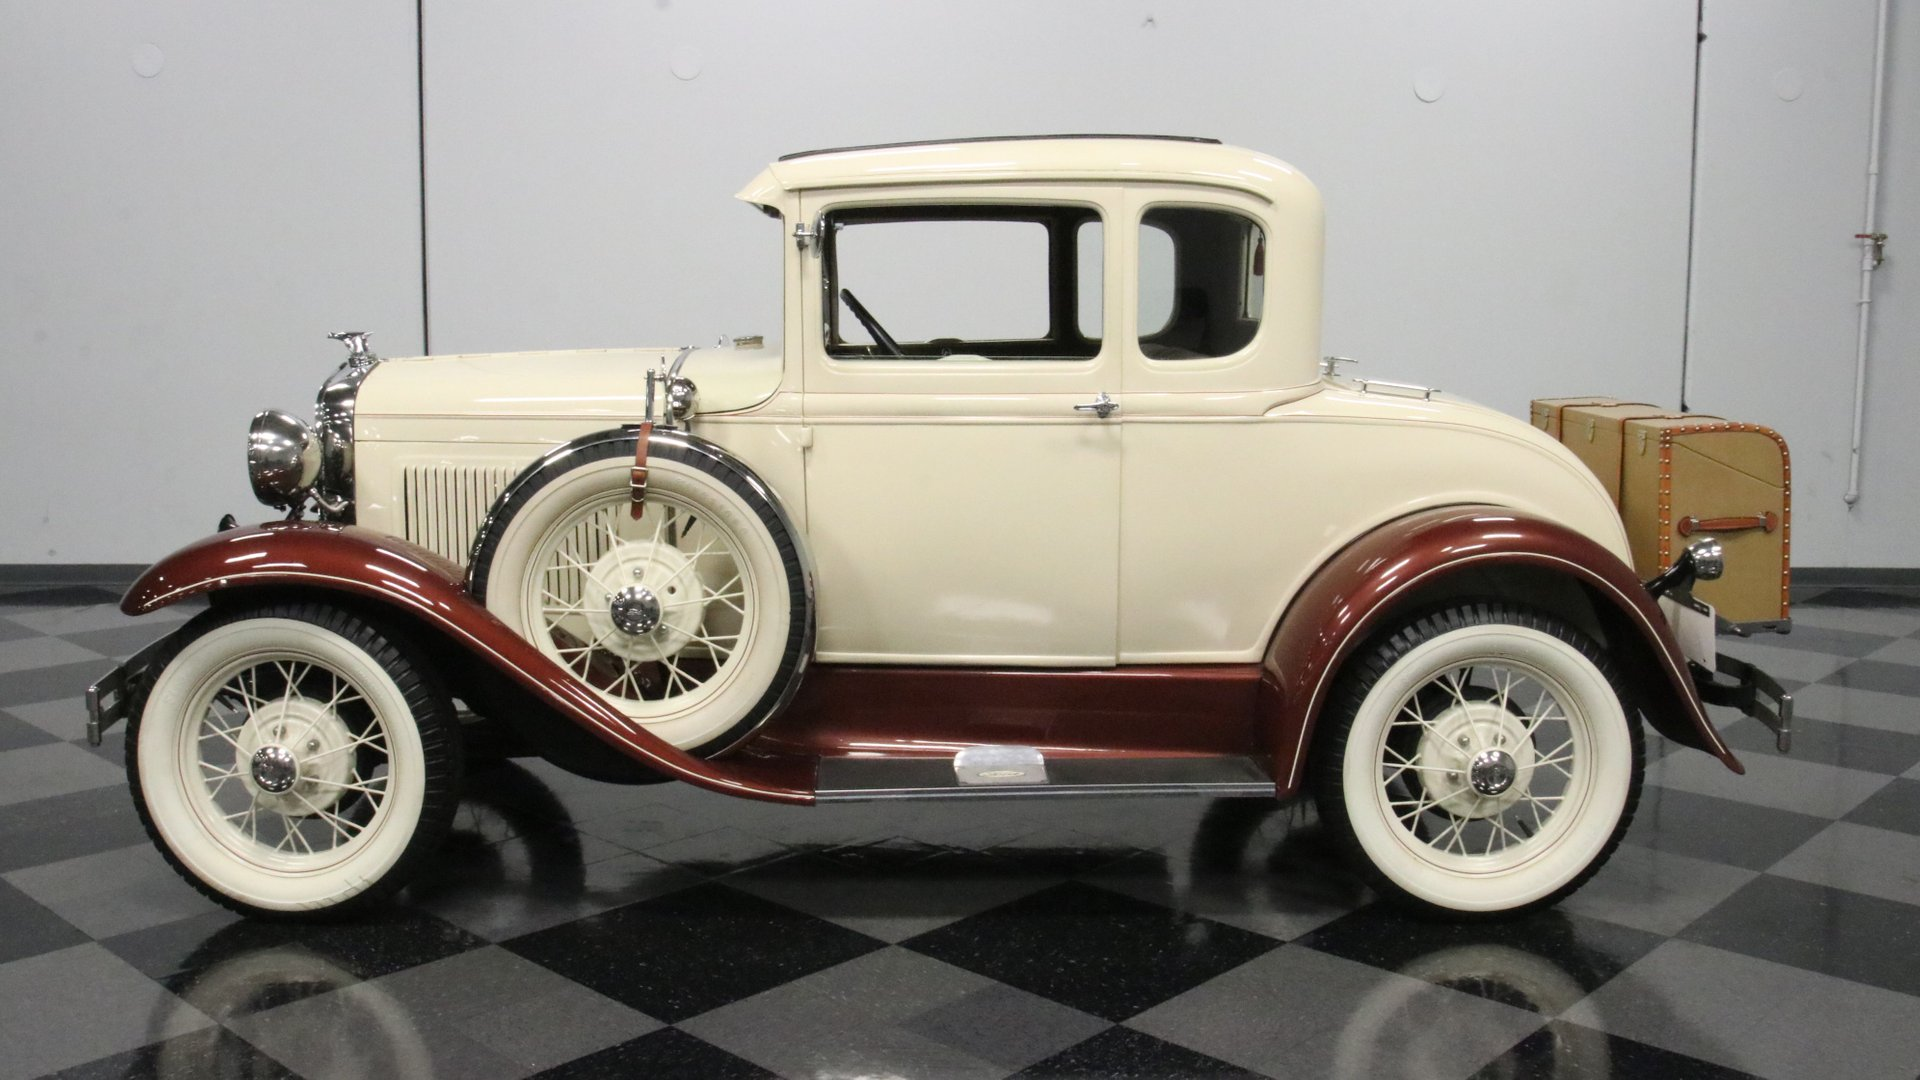 1930 ford model a rumble seat coupe